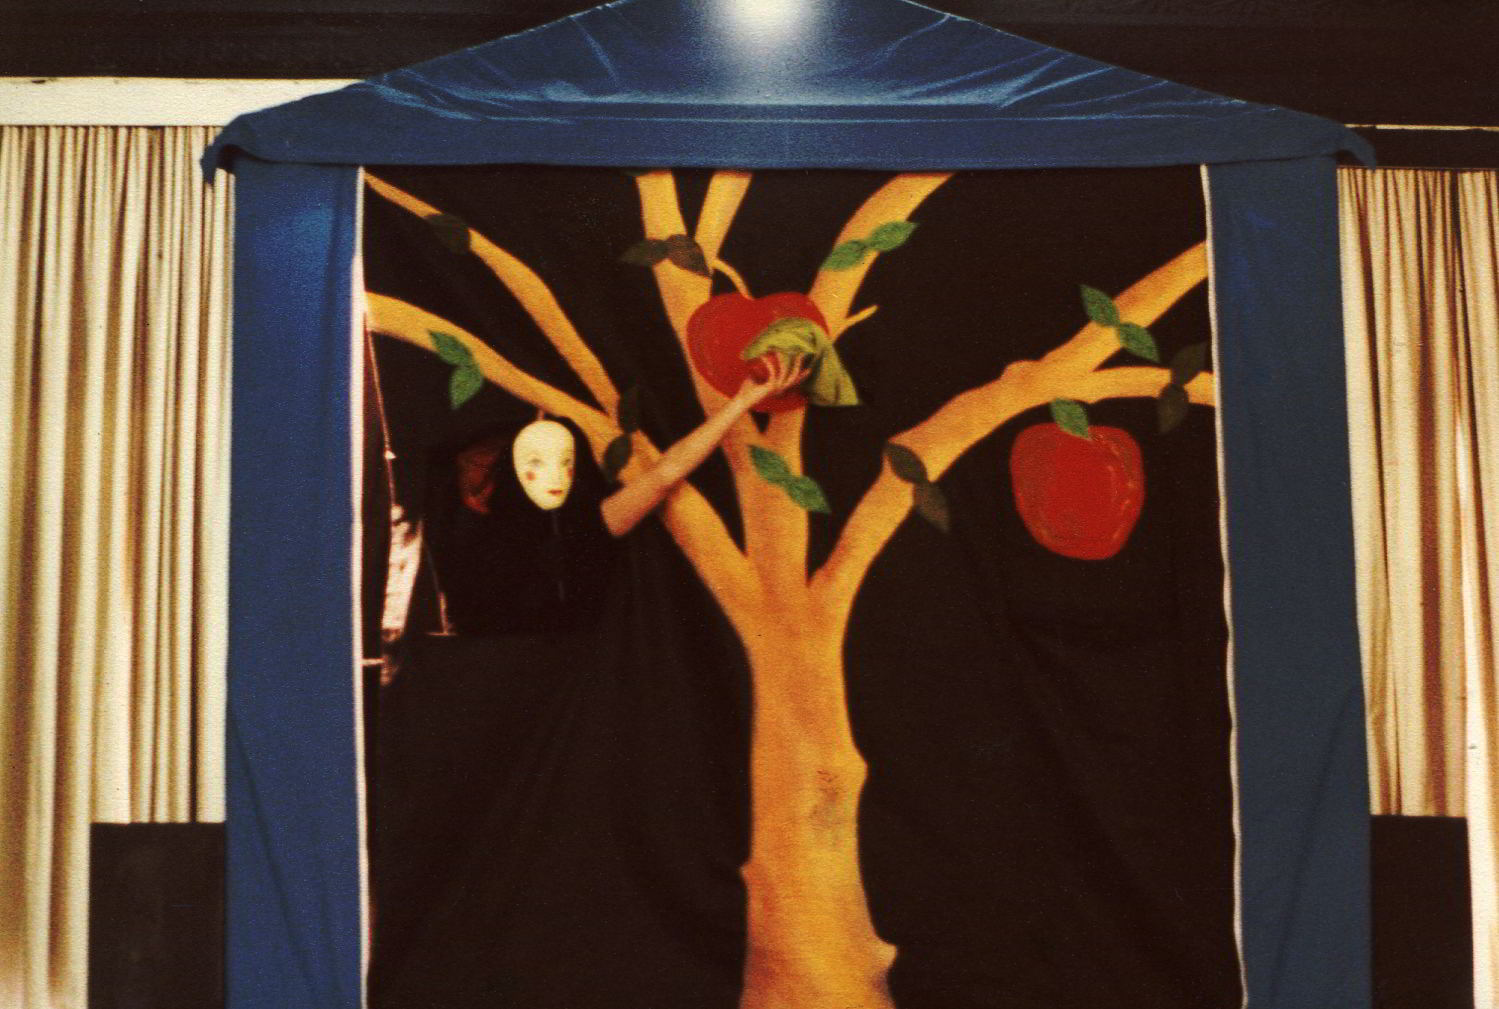 Handspan Theatre The Apple Show set up - blue tent with an appliqued apple tree across its front side